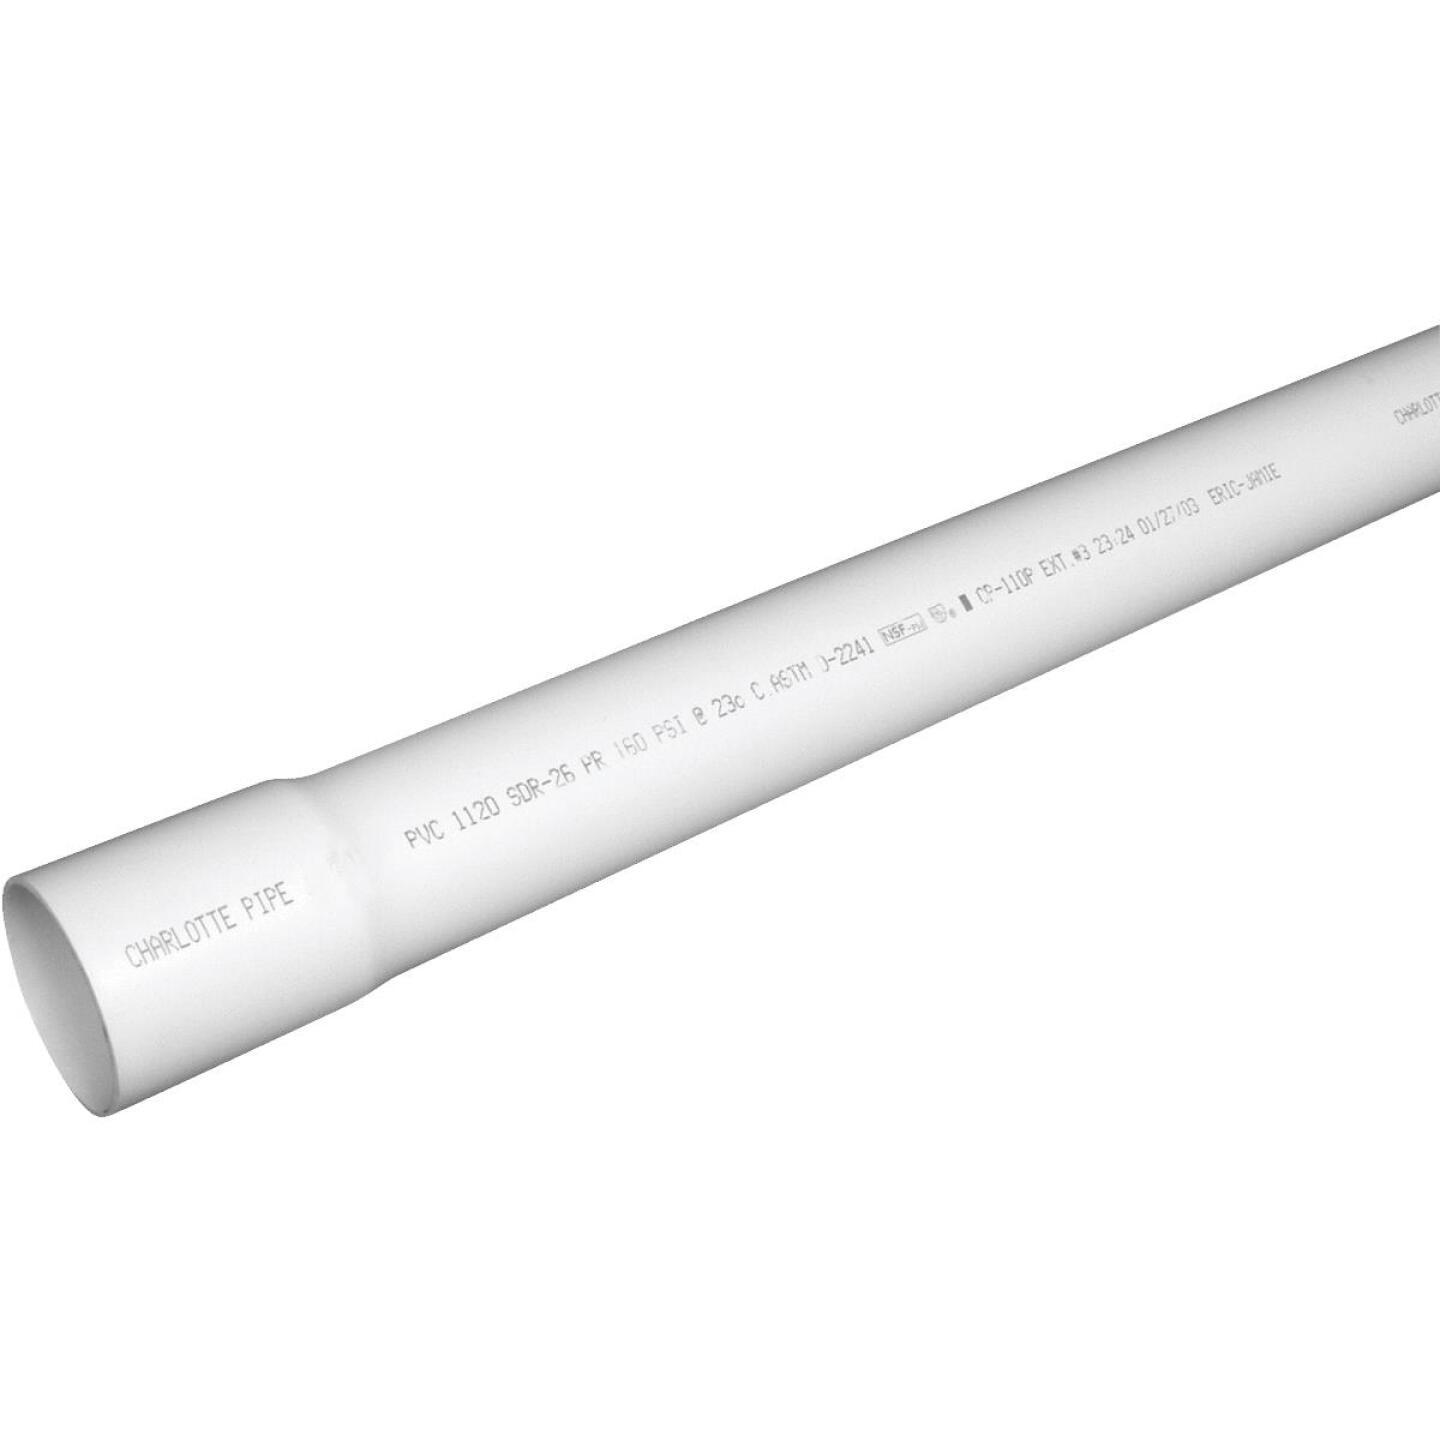 Charlotte Pipe 1-1/2 In. x 20 Ft. Cold Water PVC Pressure Pipe, SDR 26, Belled End Image 1